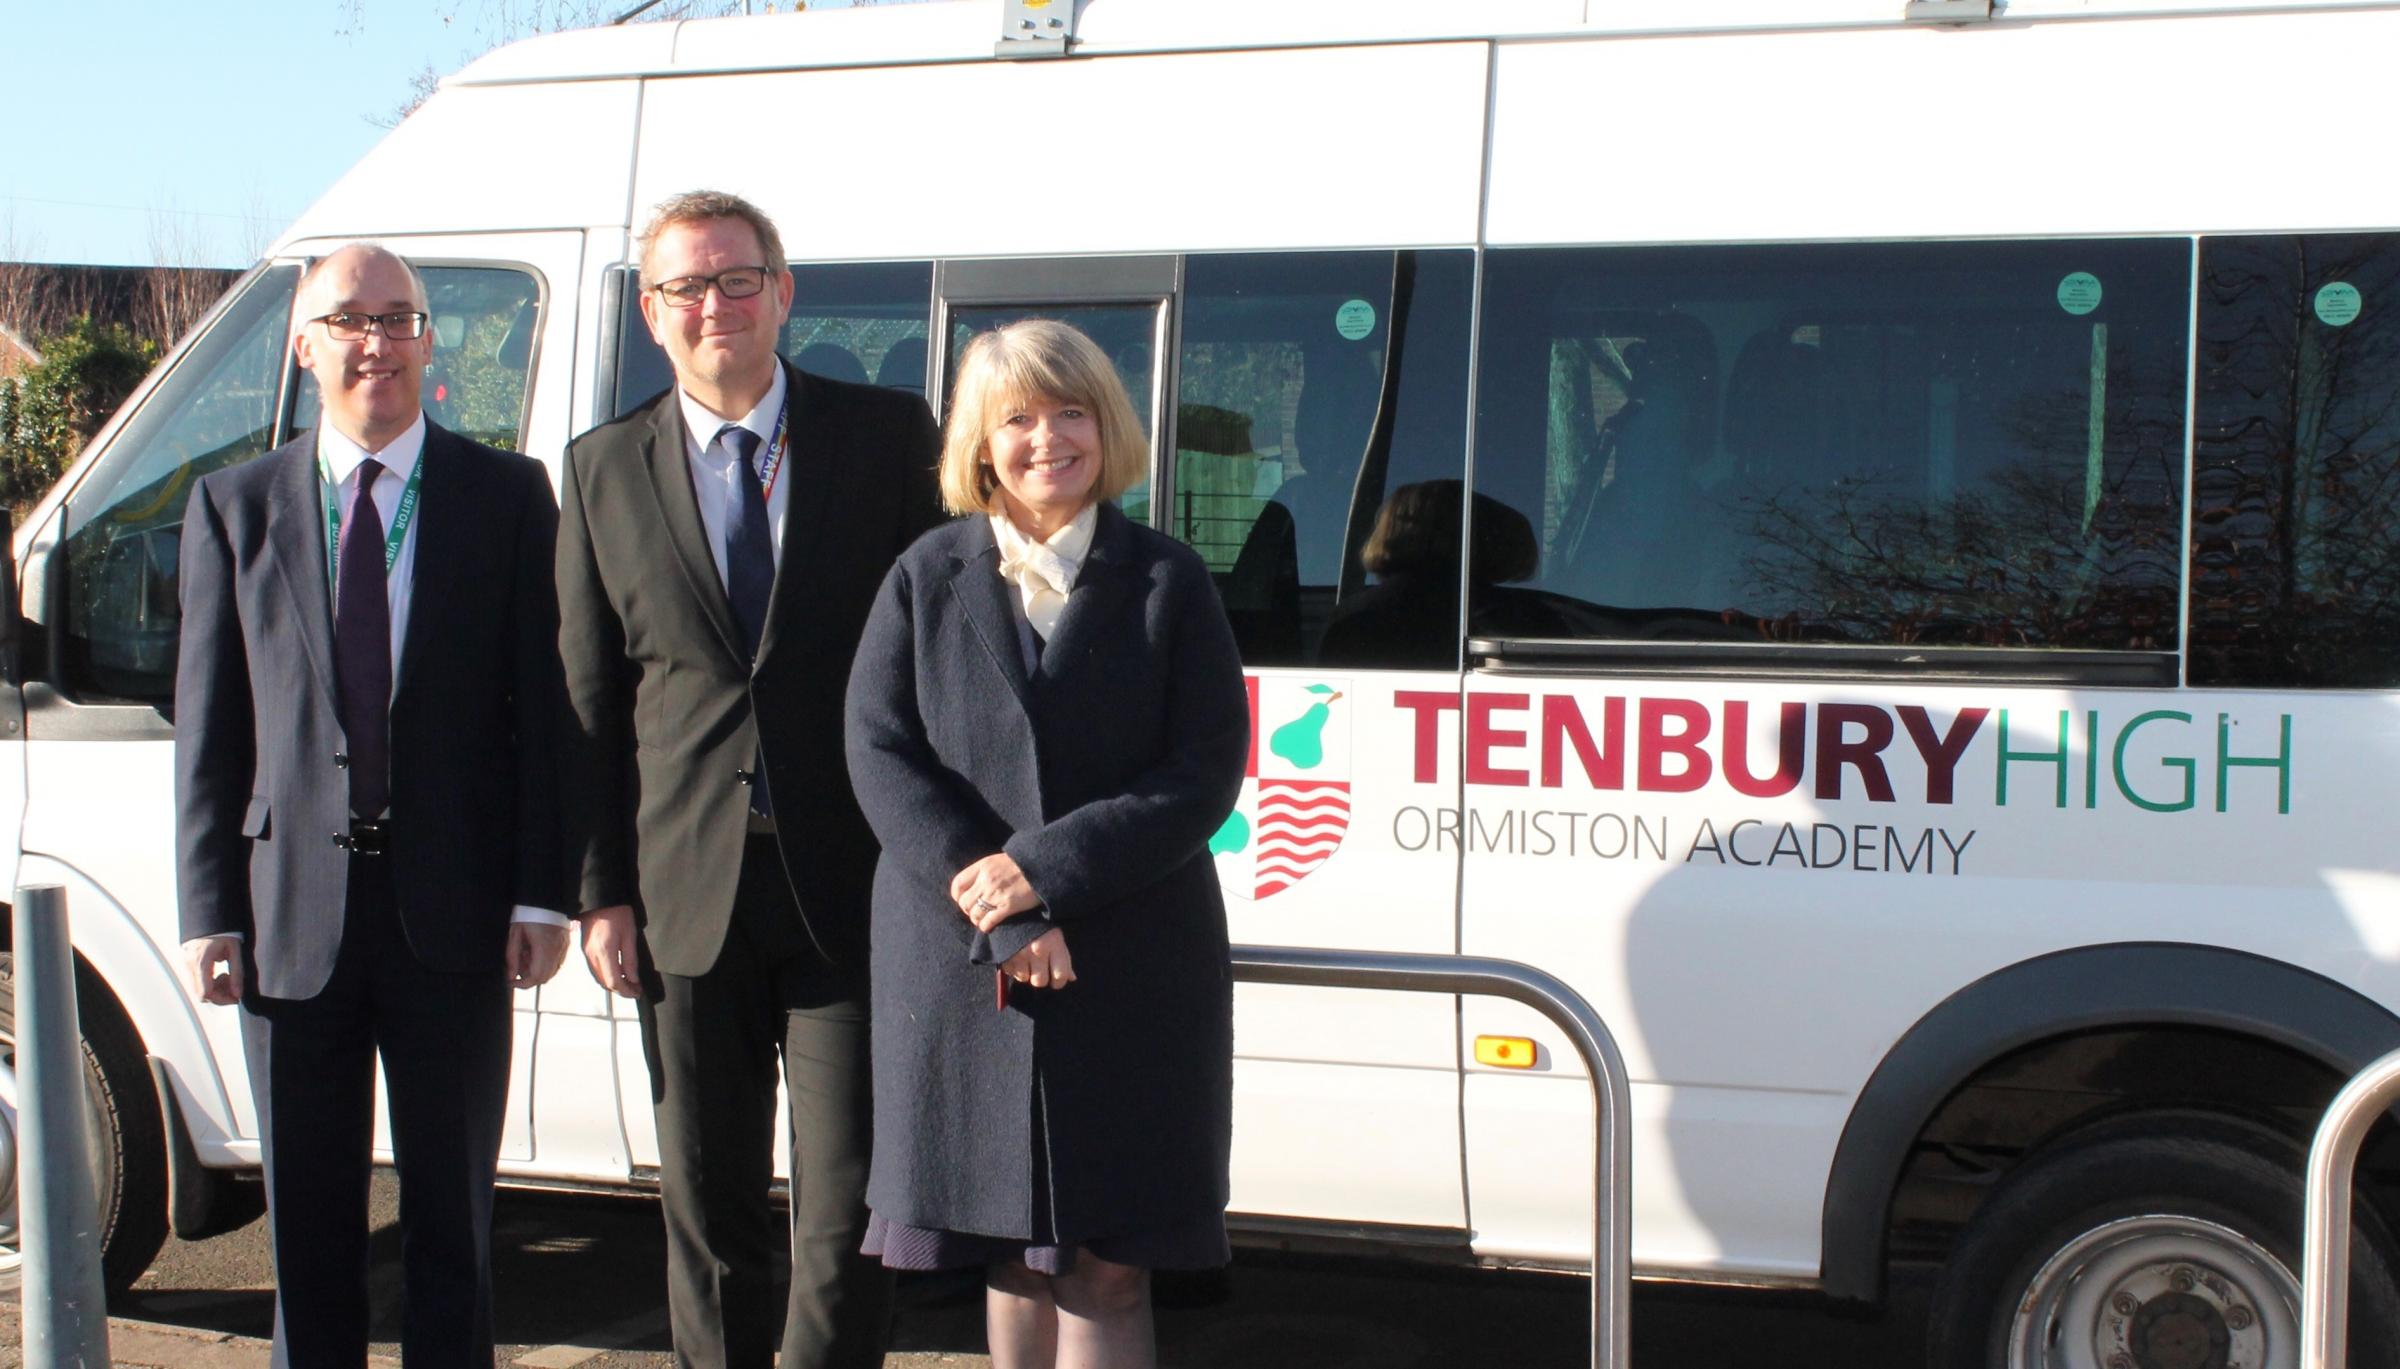 Harriett Baldwin MP with from left Jason Howard of the Ormiston Academy Trust and Adrian Price, school Principal